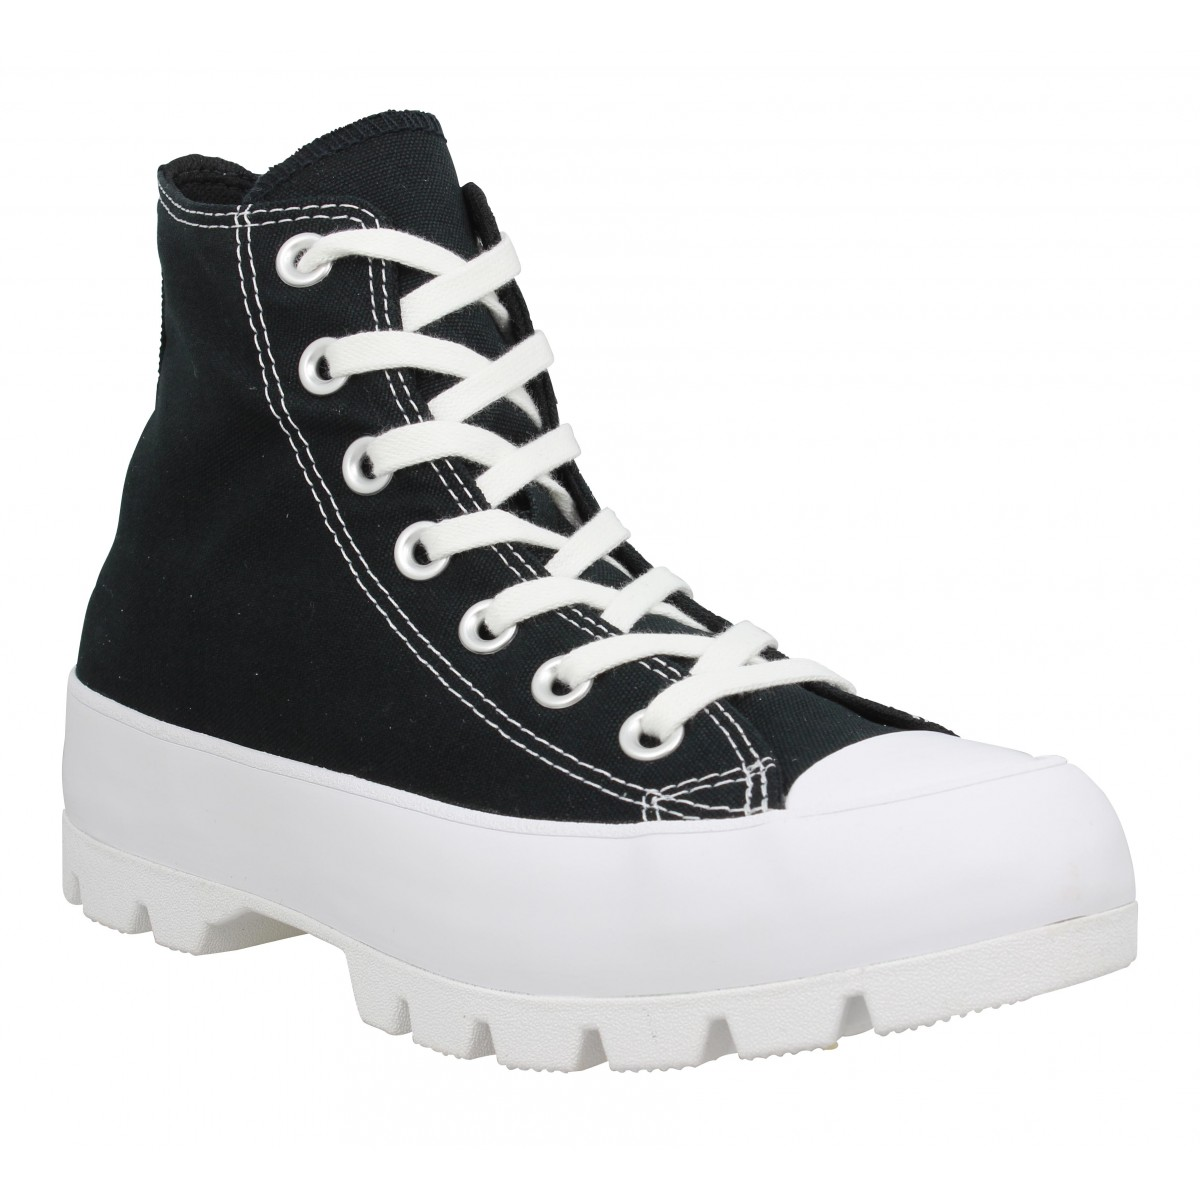 Baskets CONVERSE Chuck Taylor All Star Lugged Hi toile Femme Noir